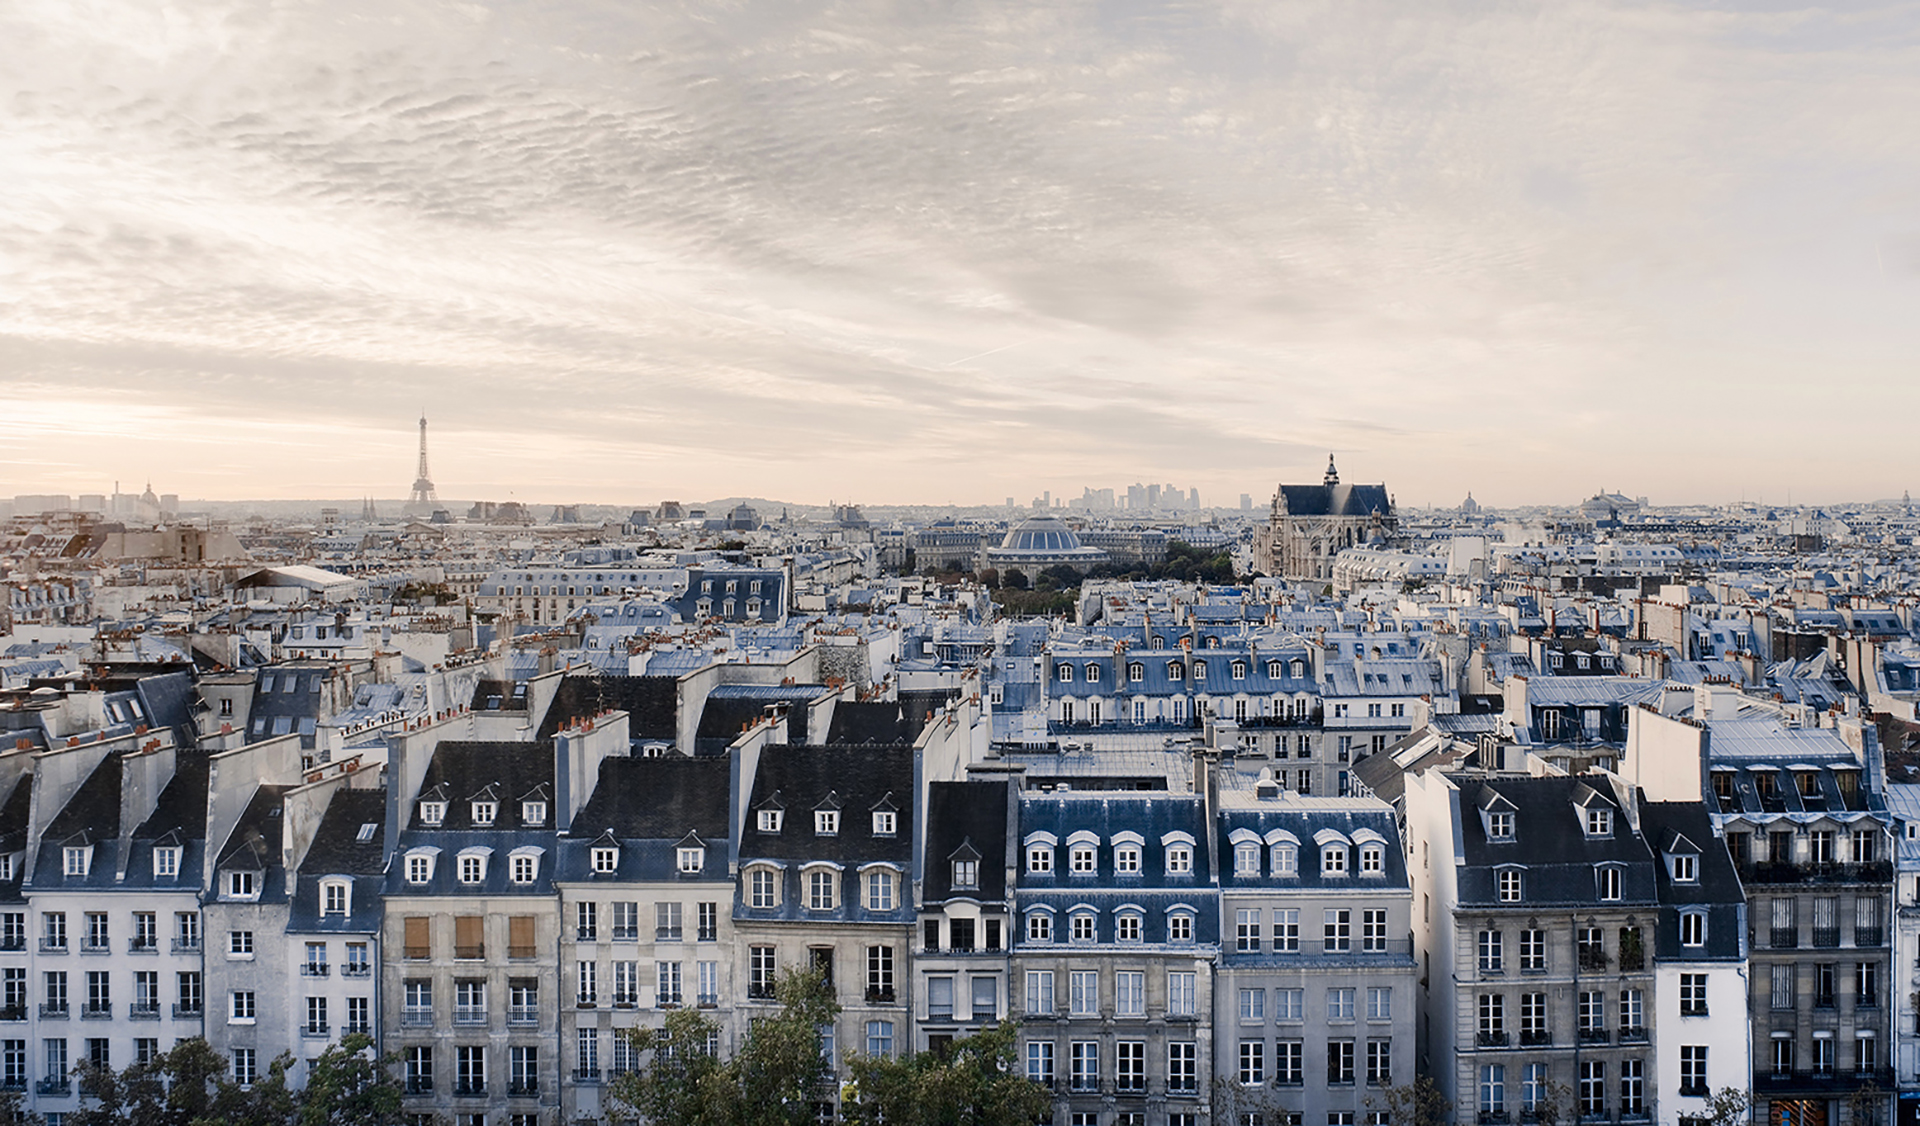 High angle view of residential buildings in Paris, France